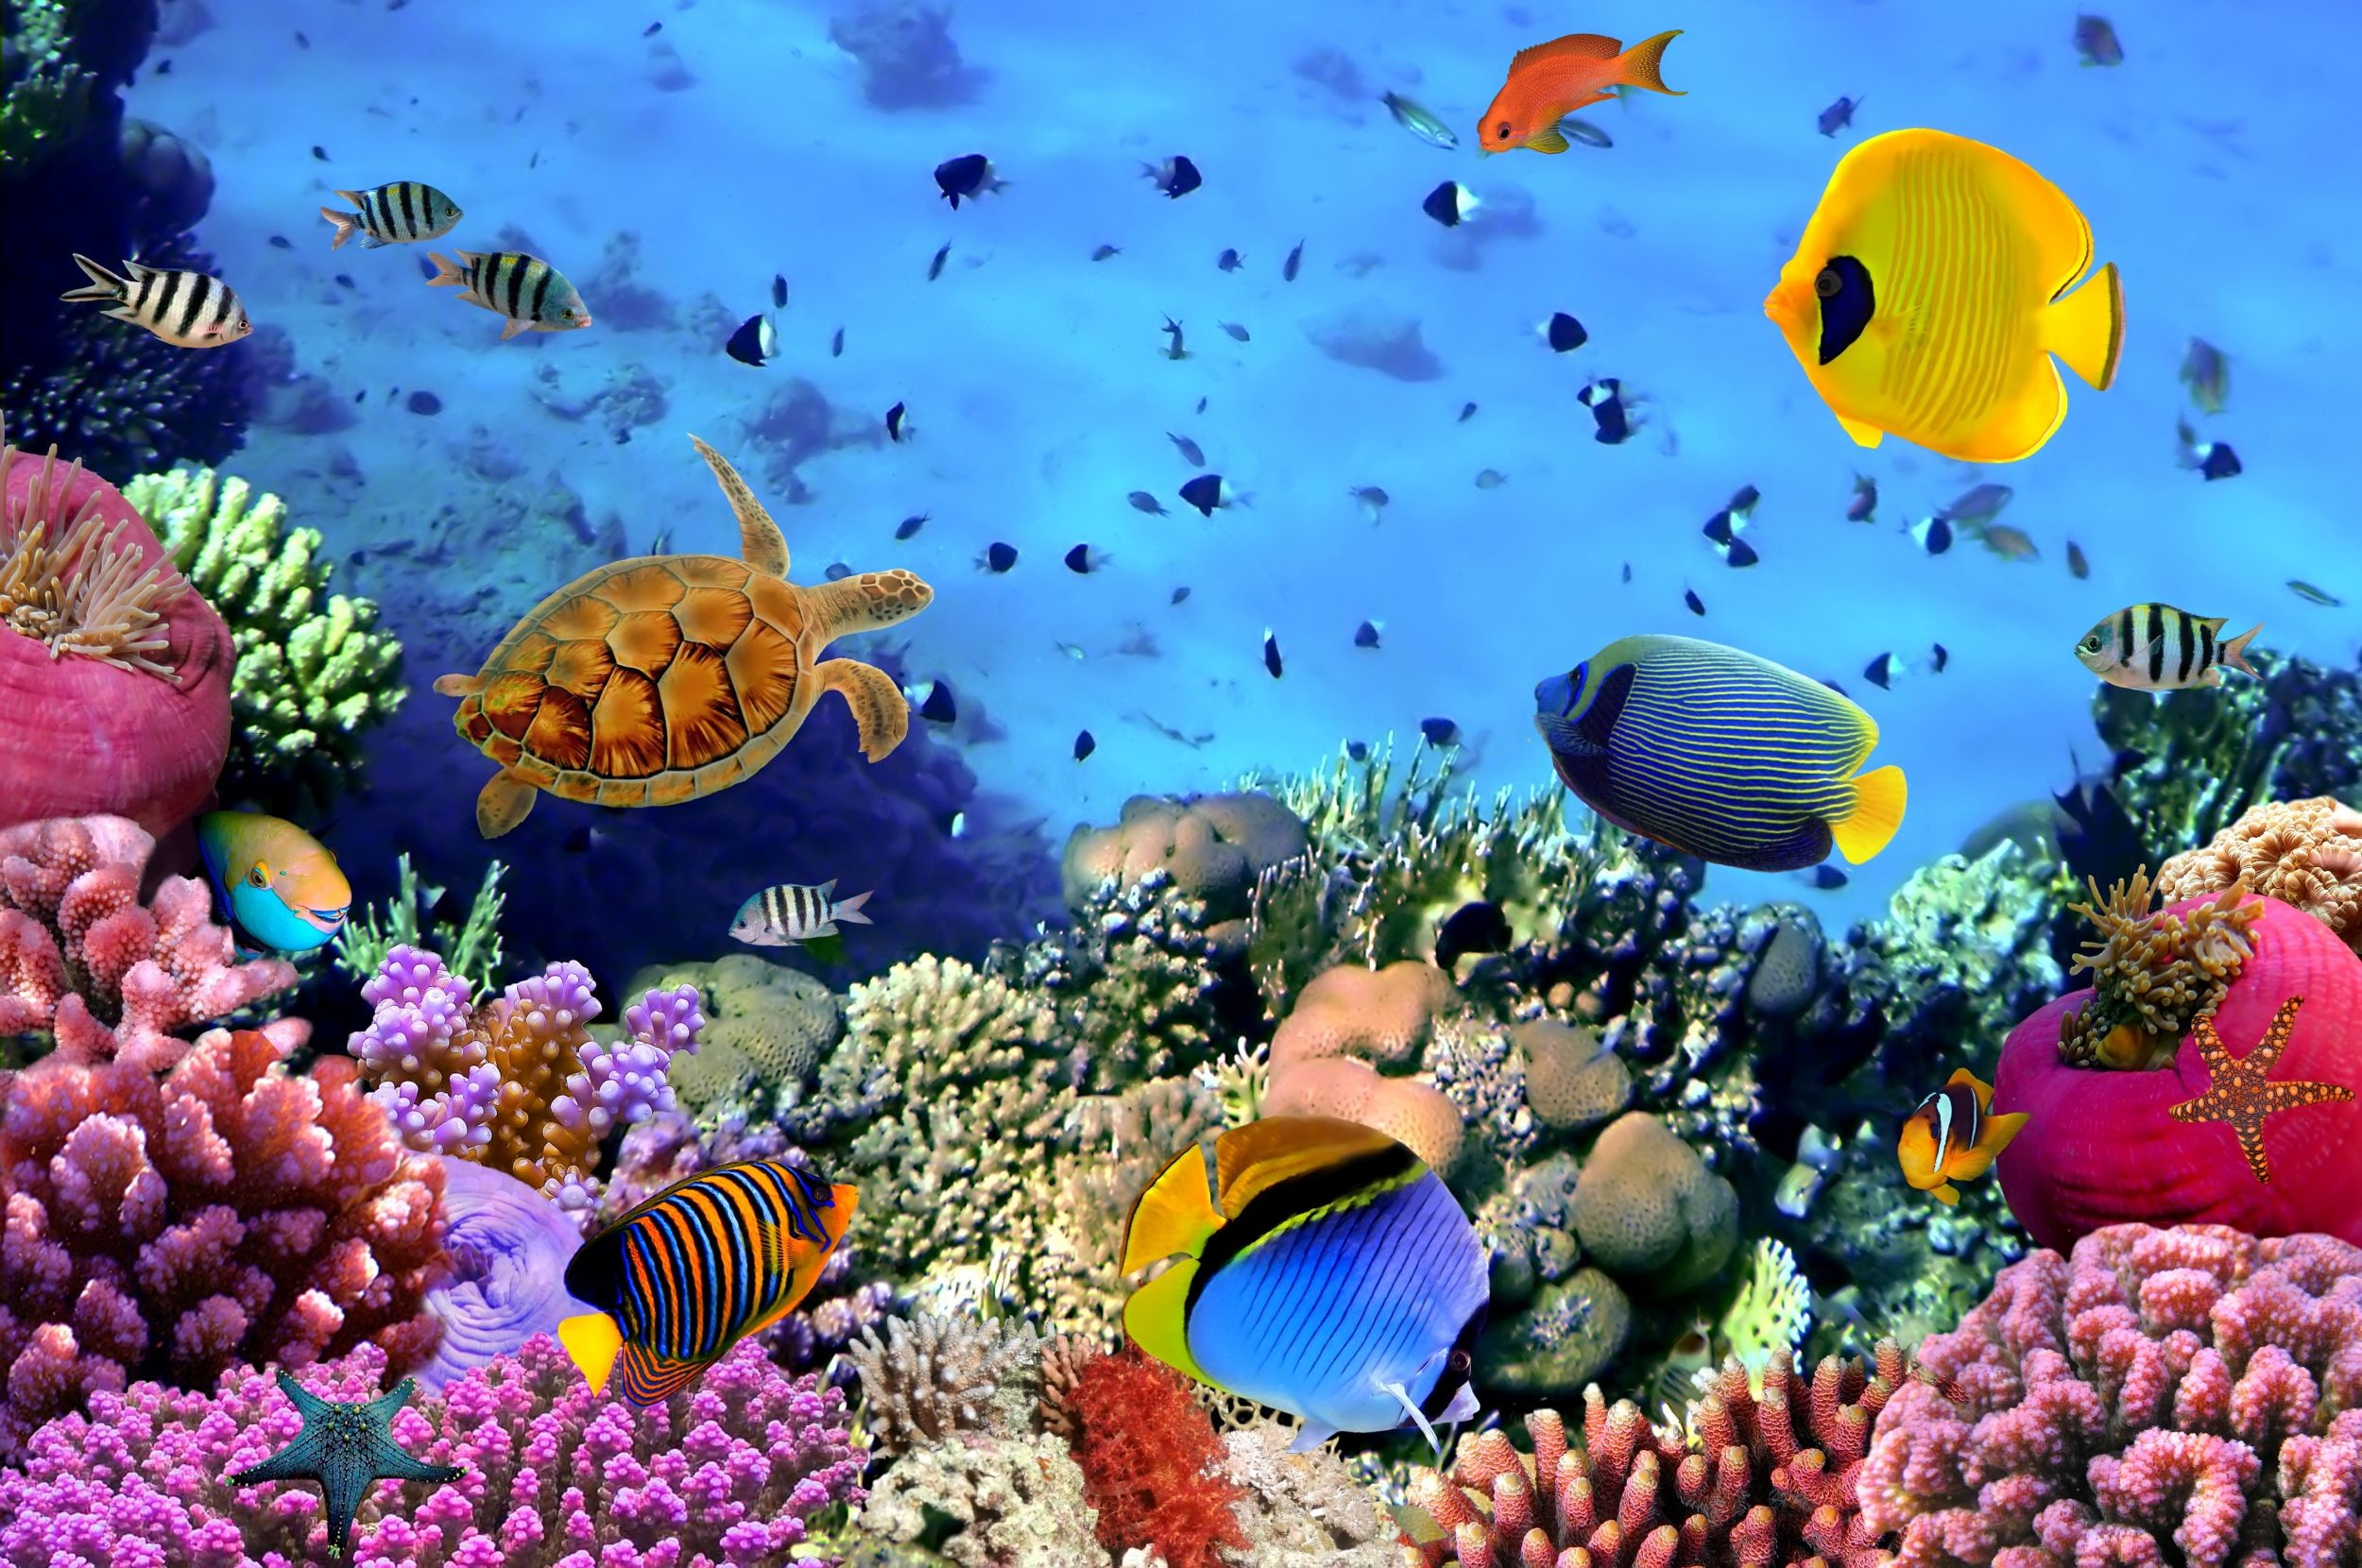 Res: 2500x1660, Photo: 100% Quality HD Underwater Backgrounds, by Reed Brawn – download for  free